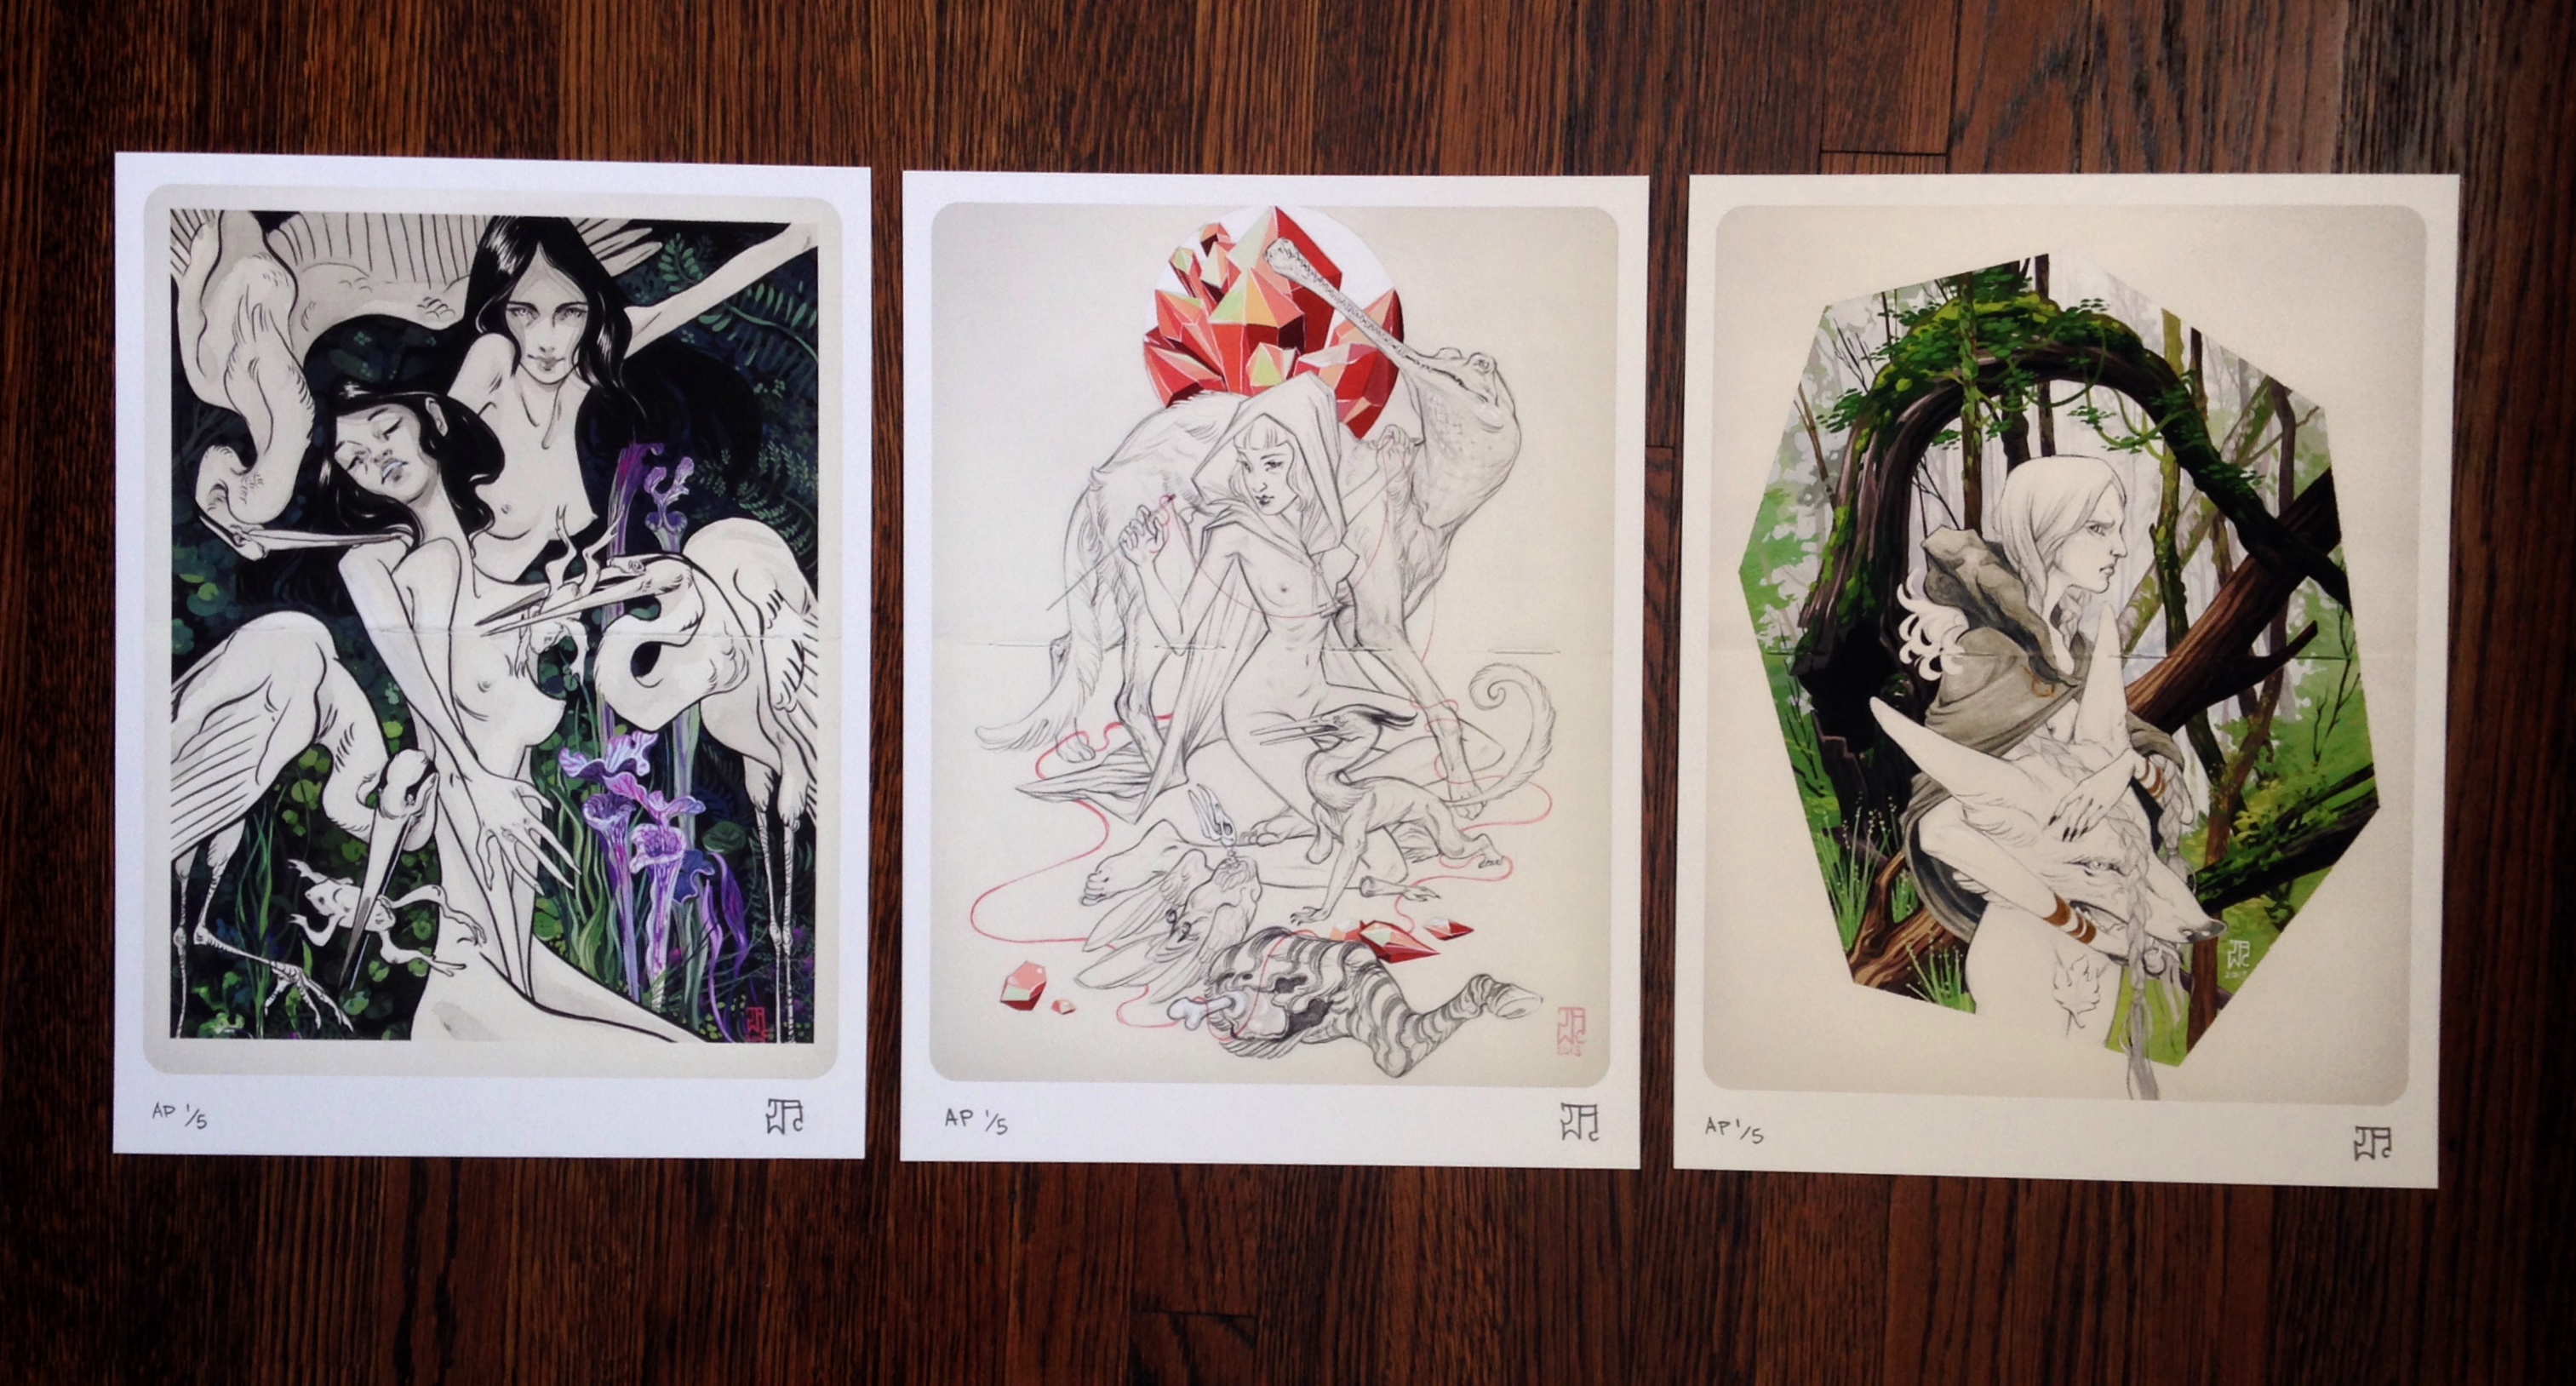 "'Possession', 'Fragile', and 'Prowl"" by J.A.W. Cooper.  (3) 9"" x 12"" Giclees.  Ed of 35.  $140 set"